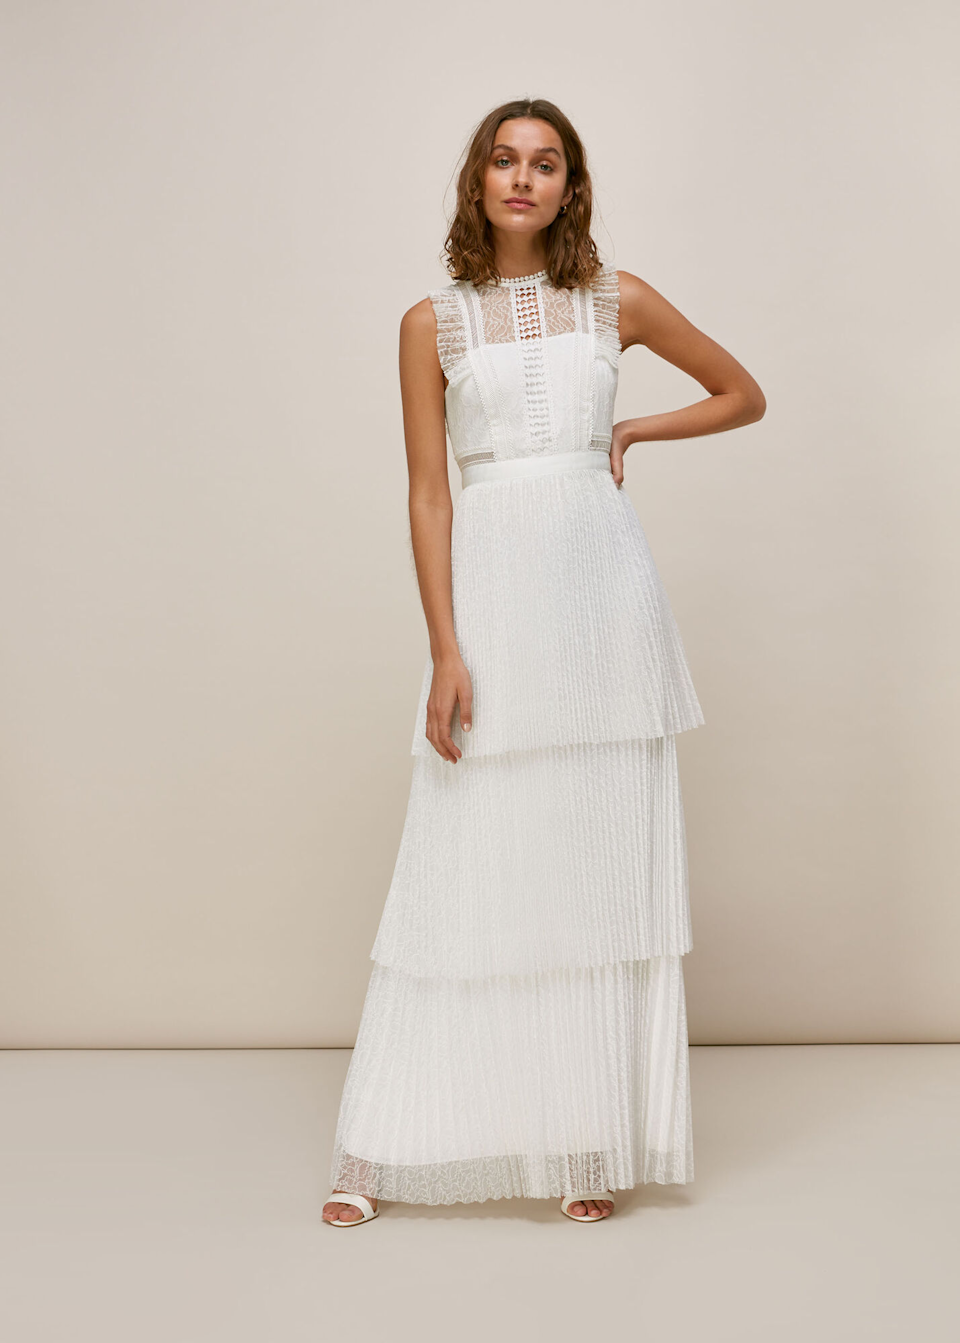 """<h2><a href=""""https://www.whistles.com/wedding/dresses/"""" rel=""""nofollow noopener"""" target=""""_blank"""" data-ylk=""""slk:Whistles"""" class=""""link rapid-noclick-resp"""">Whistles</a></h2><br>Contemporary brand Whistles — frequently worn by Kate Middleton — launched bridal dresses four years ago. Ever since then, brides have flocked to this high-street favorite for an affordable selection of modern styles that range from ethereal to minimal."""